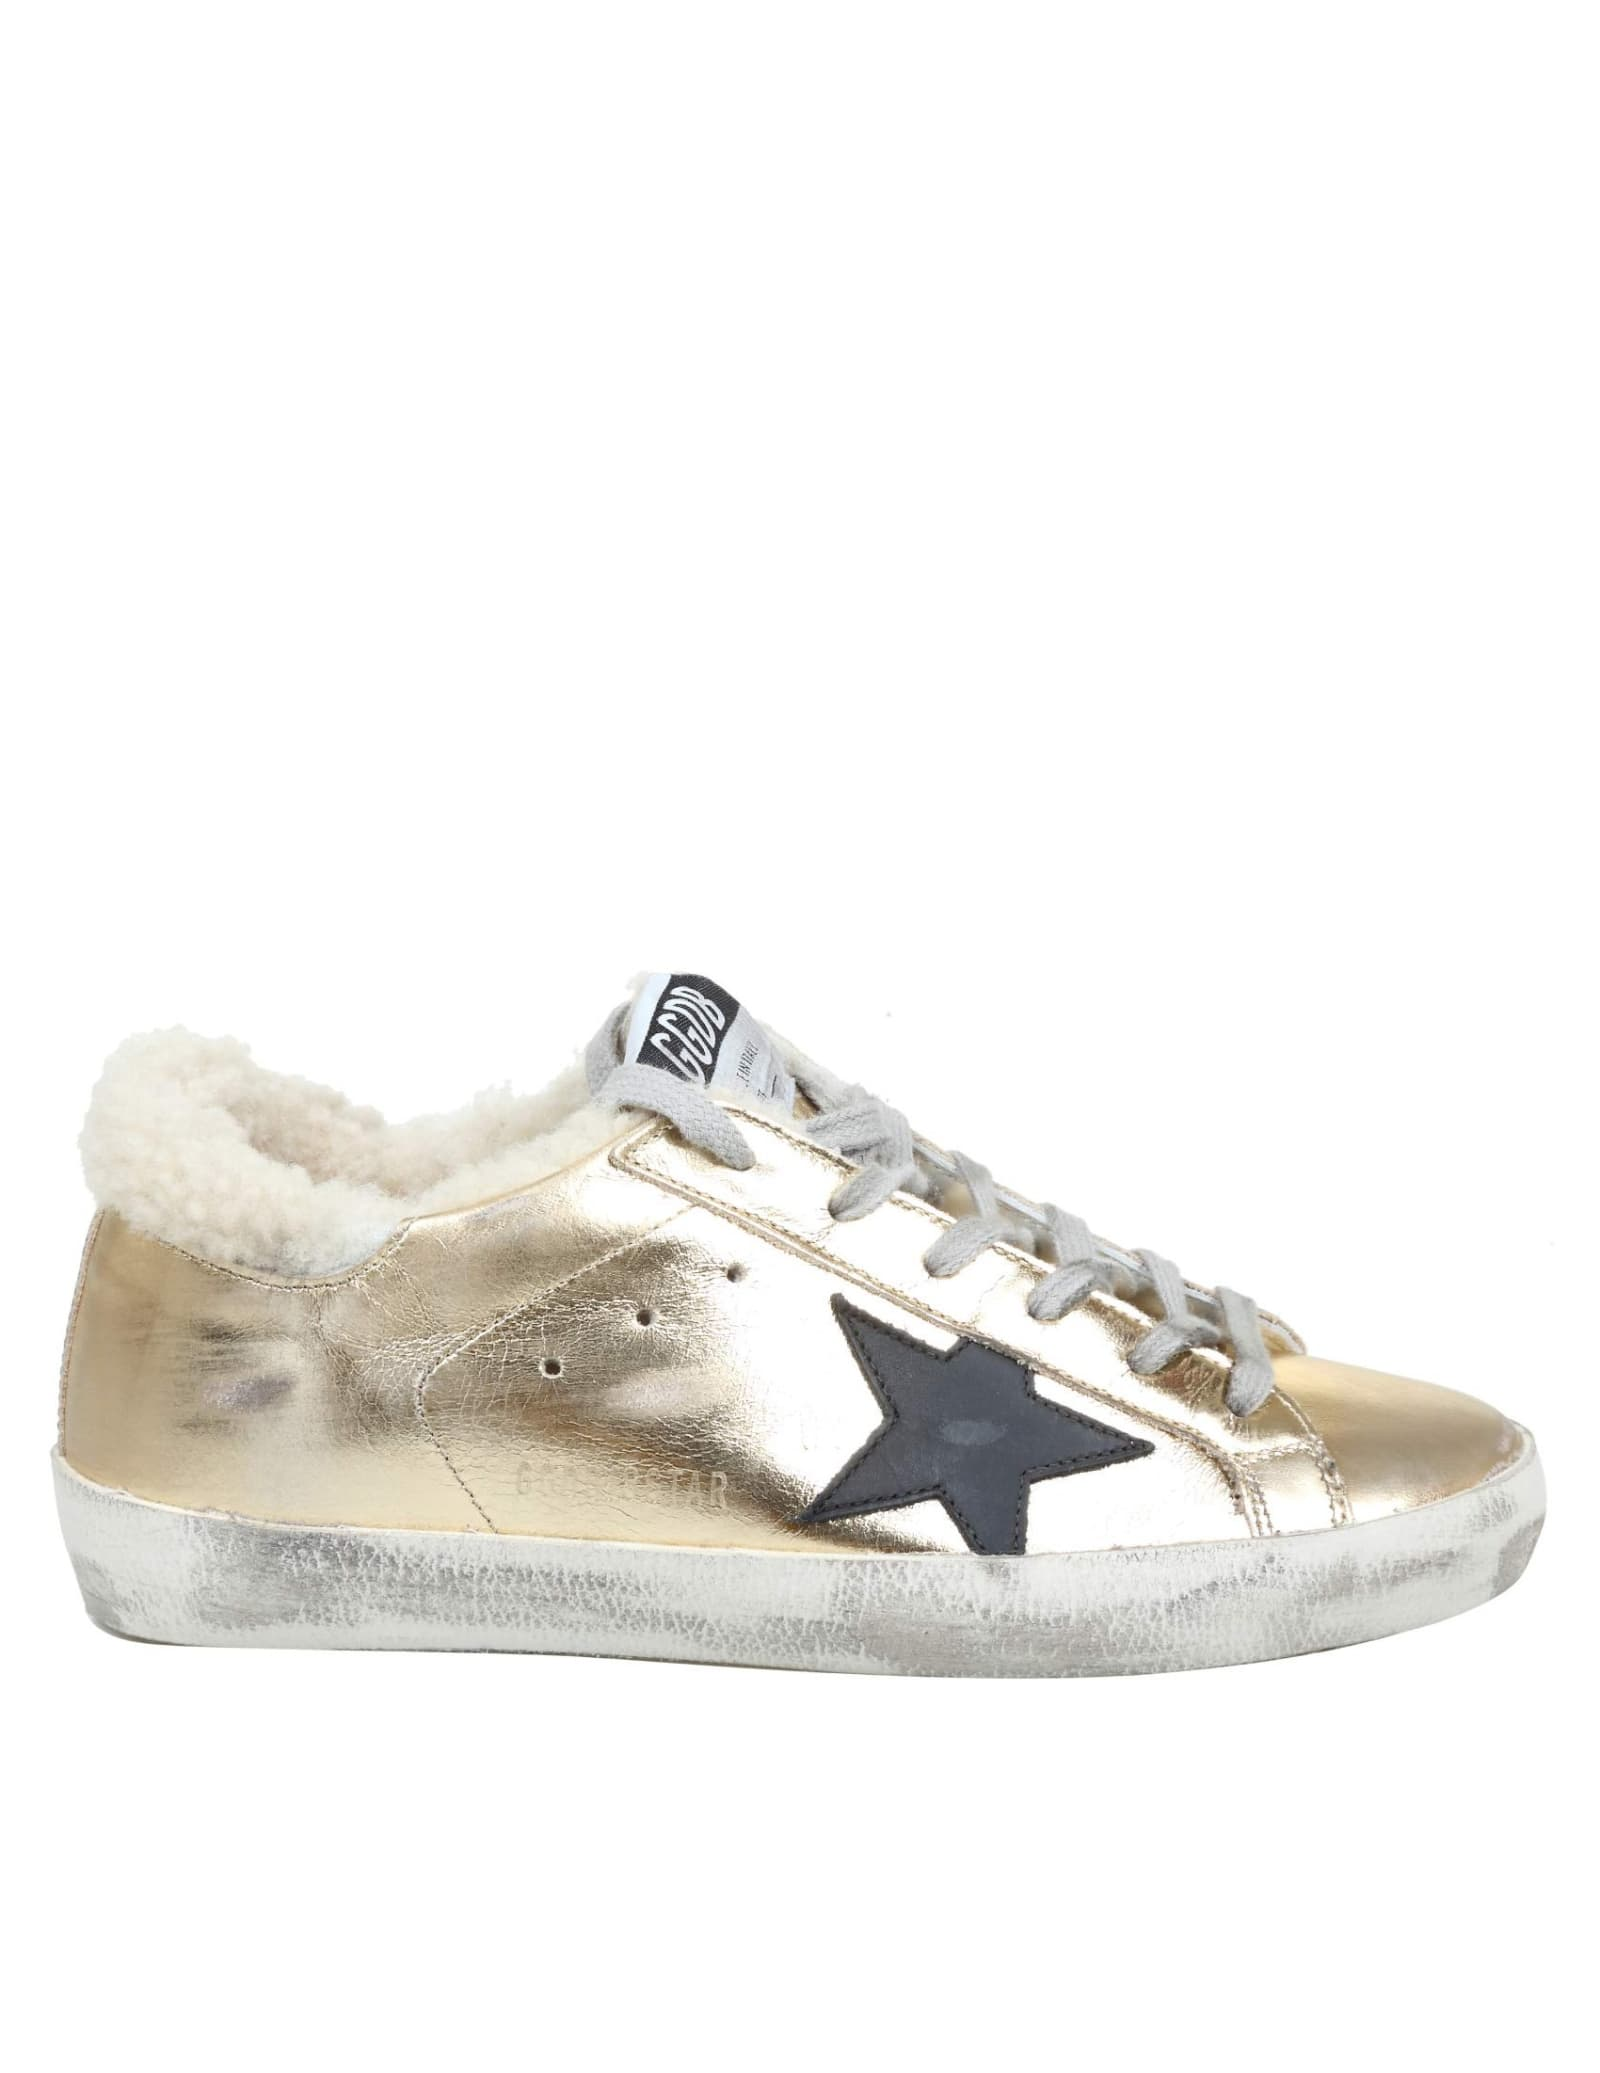 Golden Goose Superstar Sneakers In Leather And Shearling